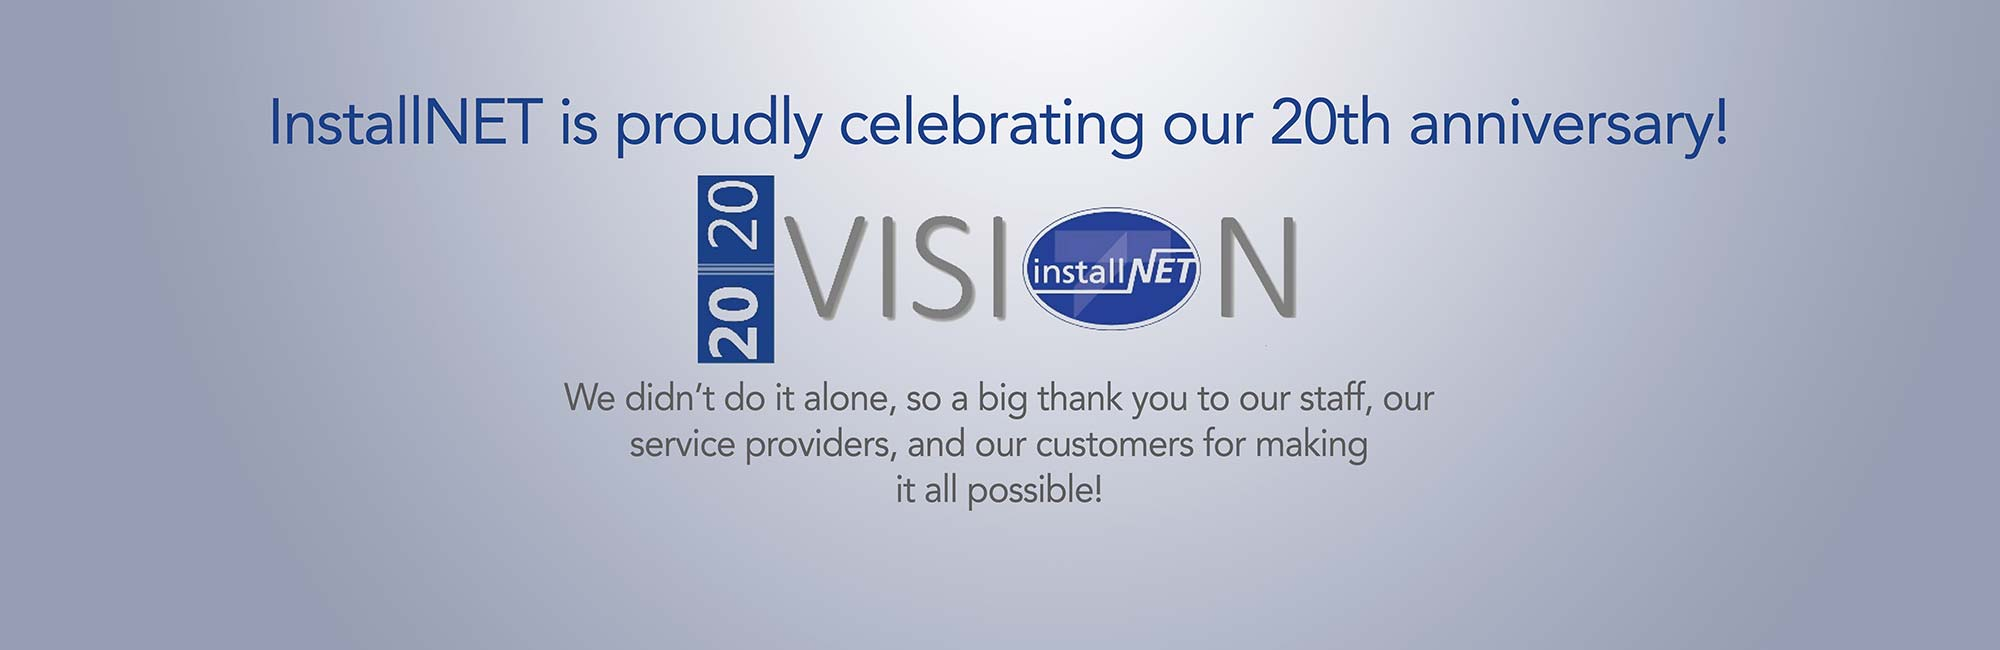 InstallNET is proudly celebrating our 20th Anniversary!